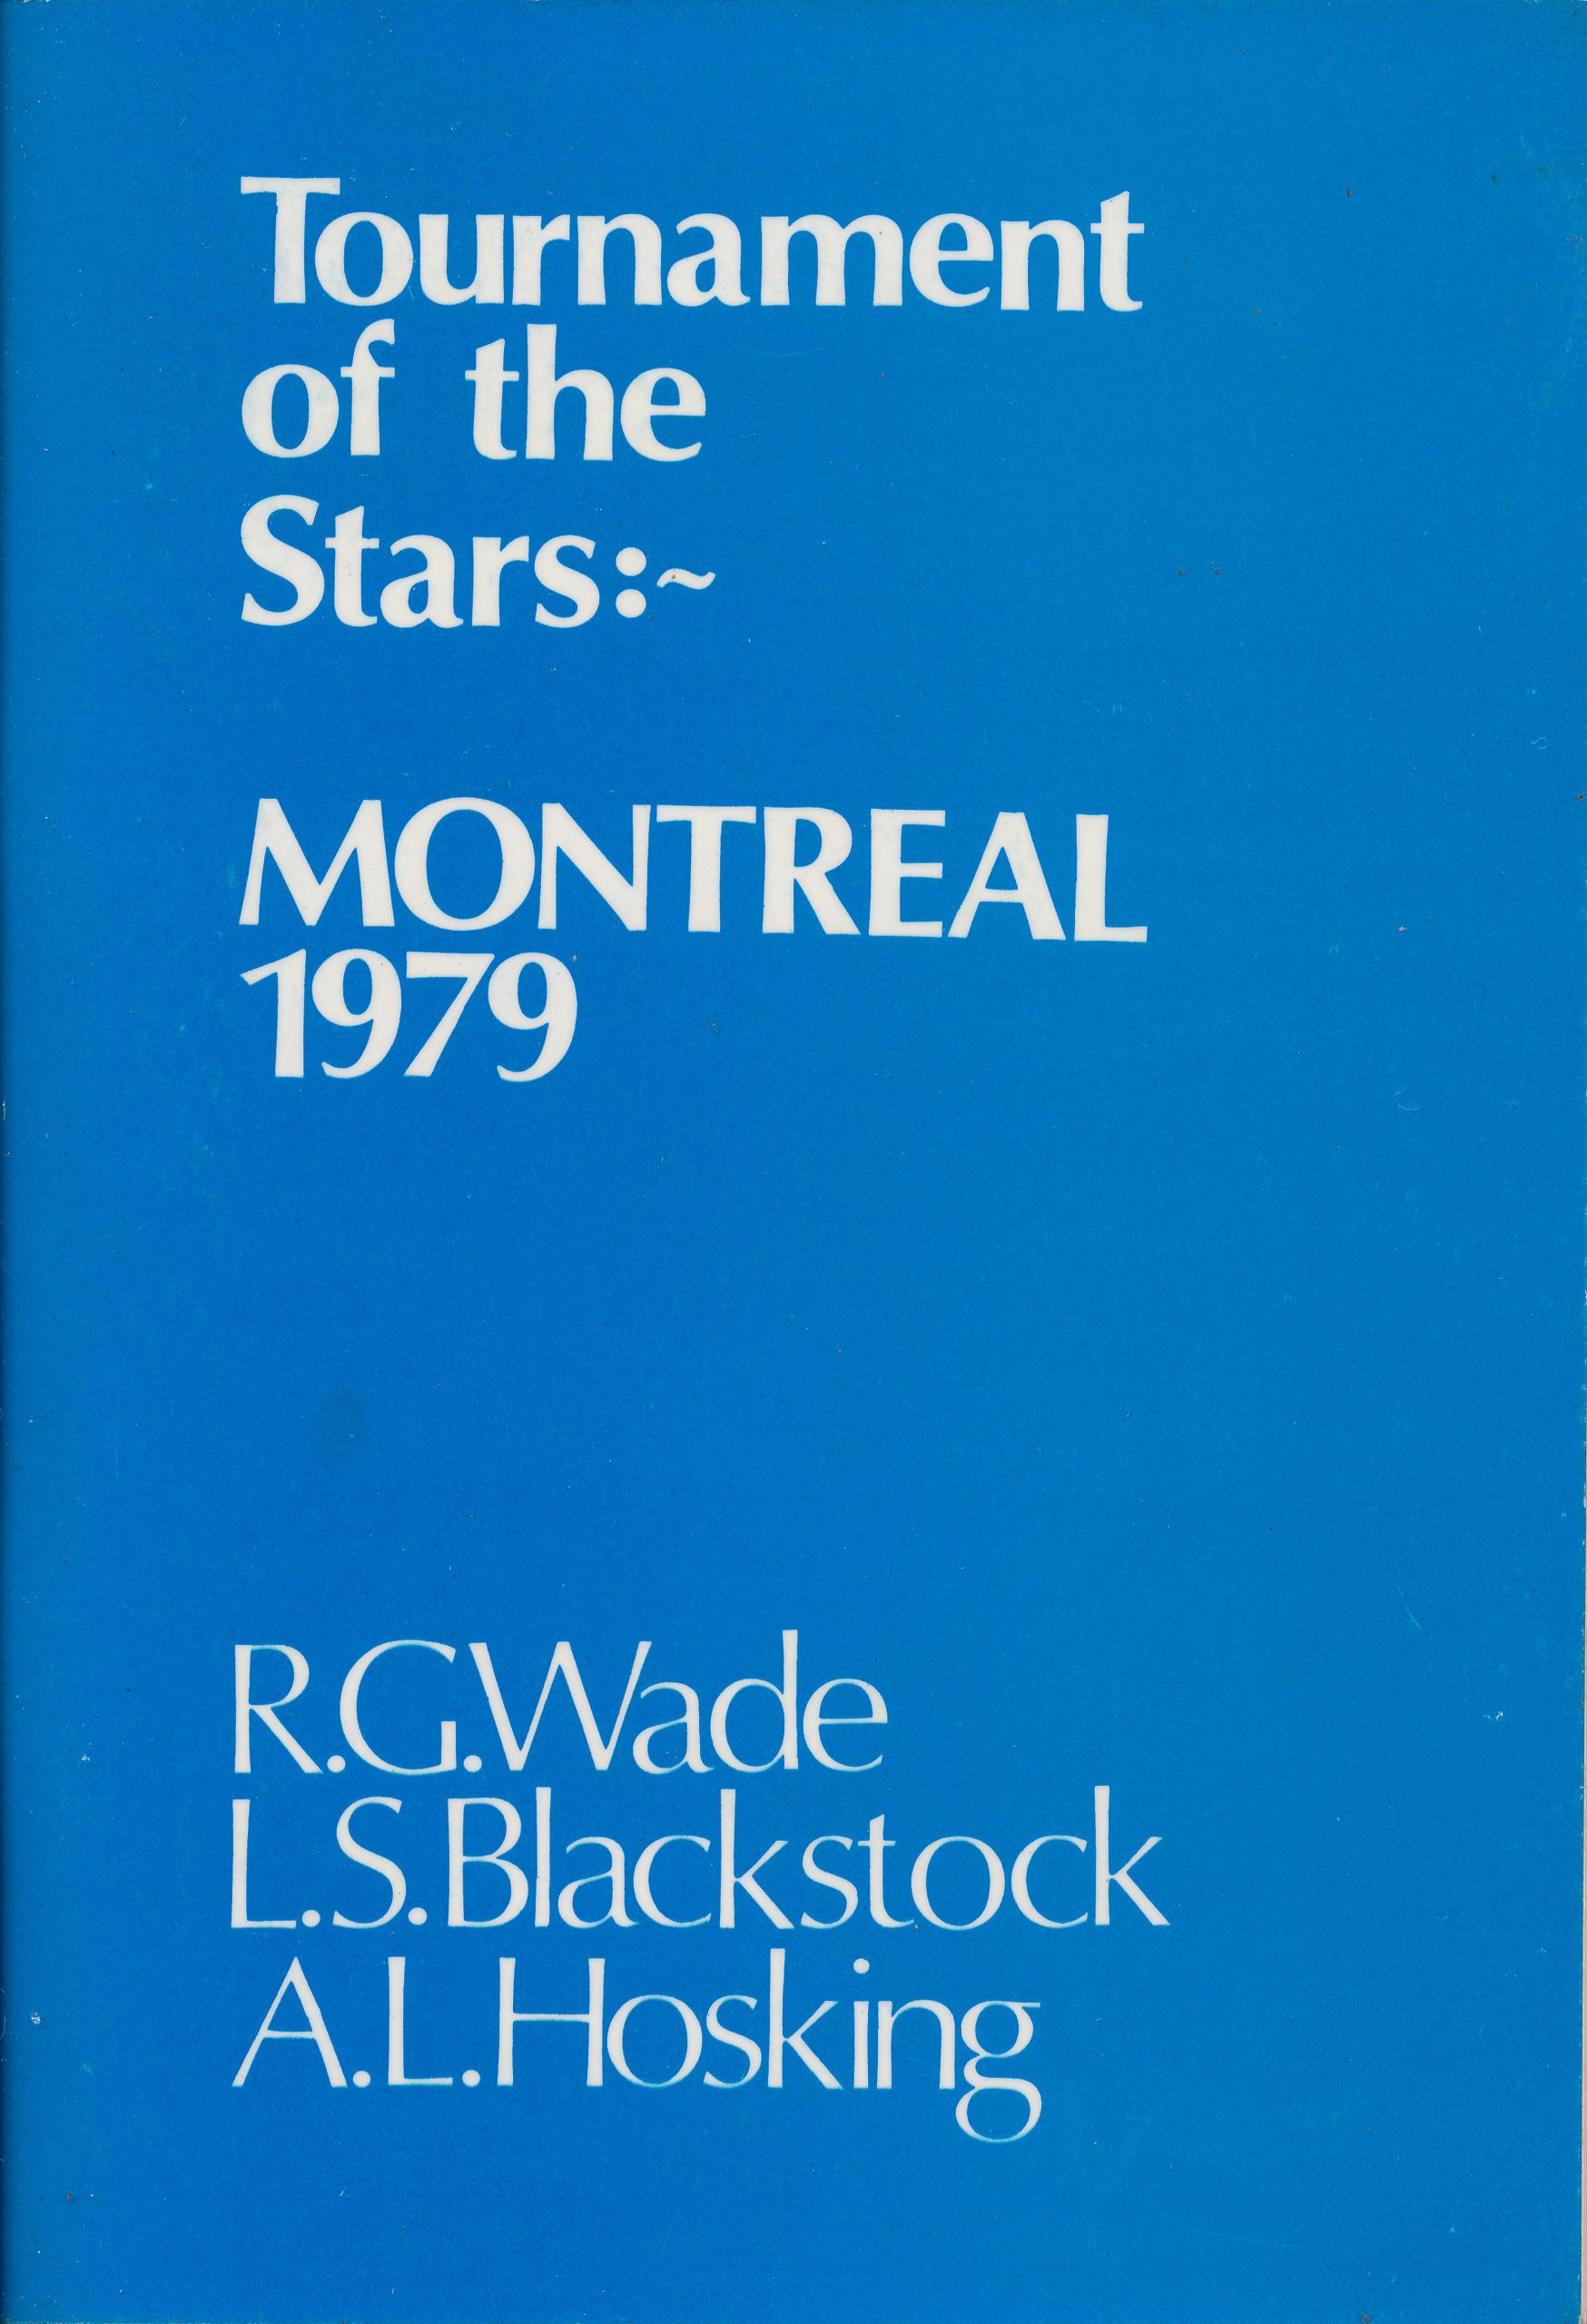 Tournament of the Stars:~ Montreal 1979, RG Wade, LS Blackstock, AL Hosking, Master Chess Publications, 1979